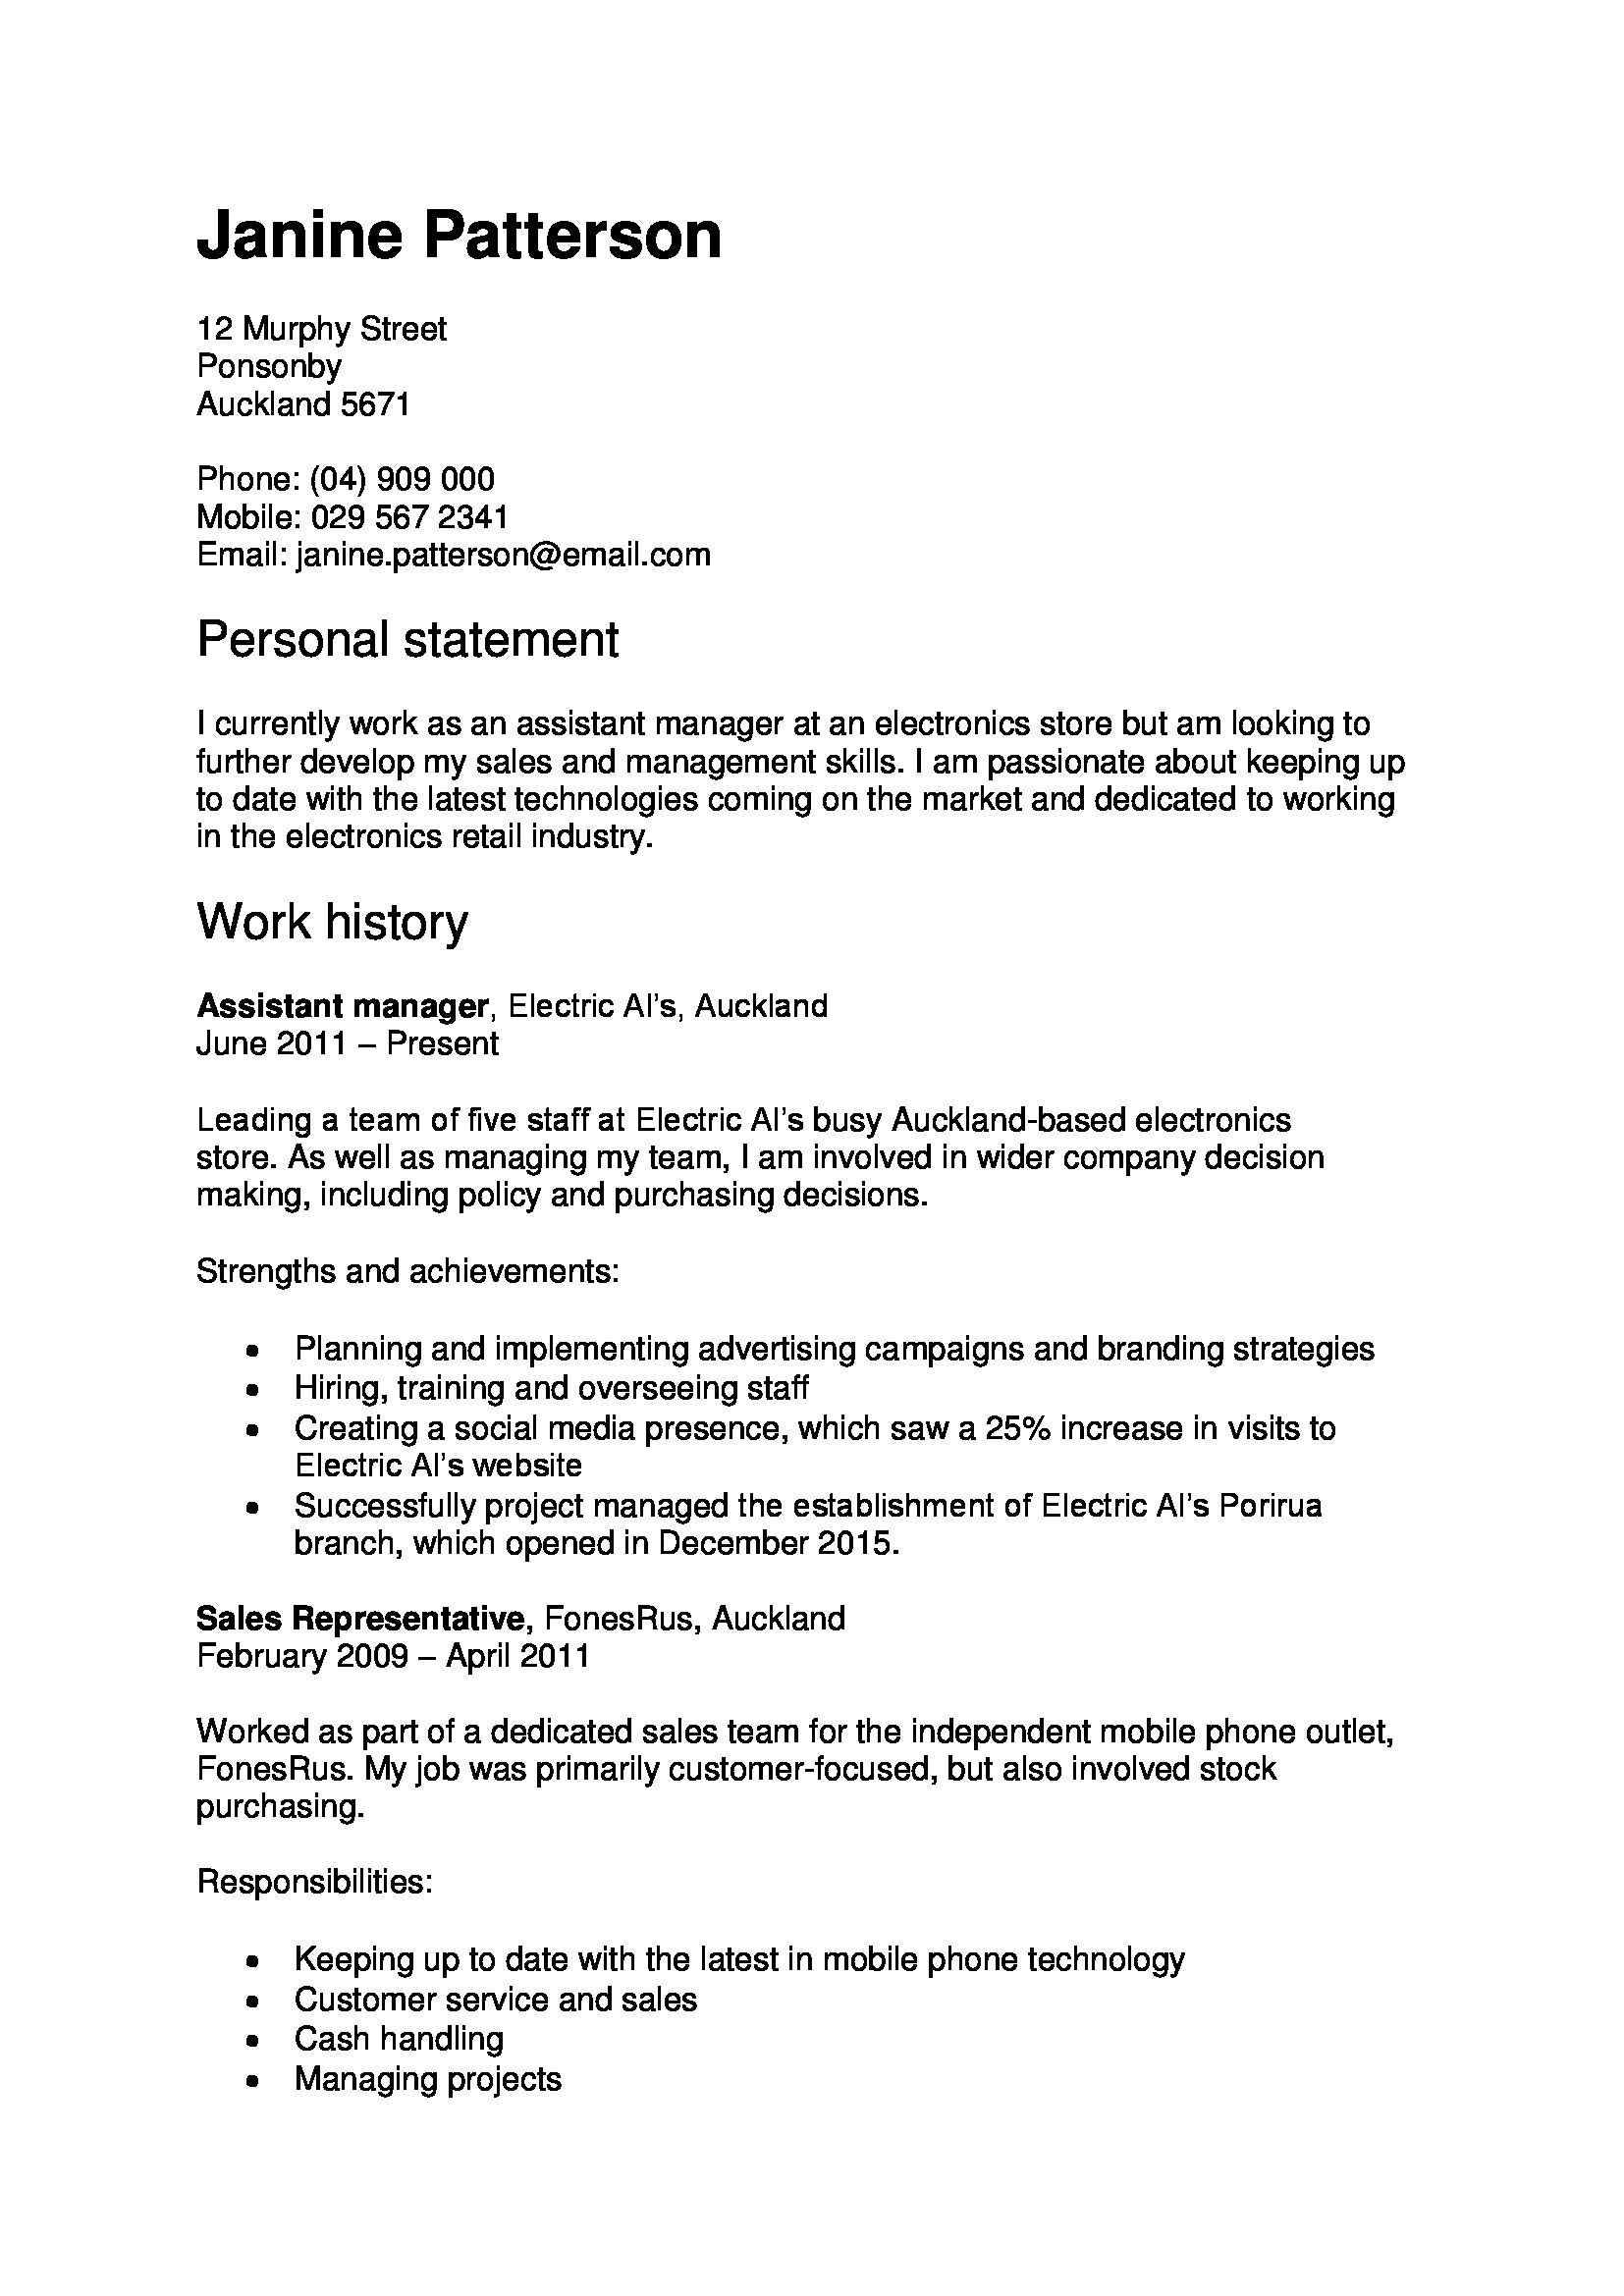 Cv Template New Zealand 1 Cv Template Internship